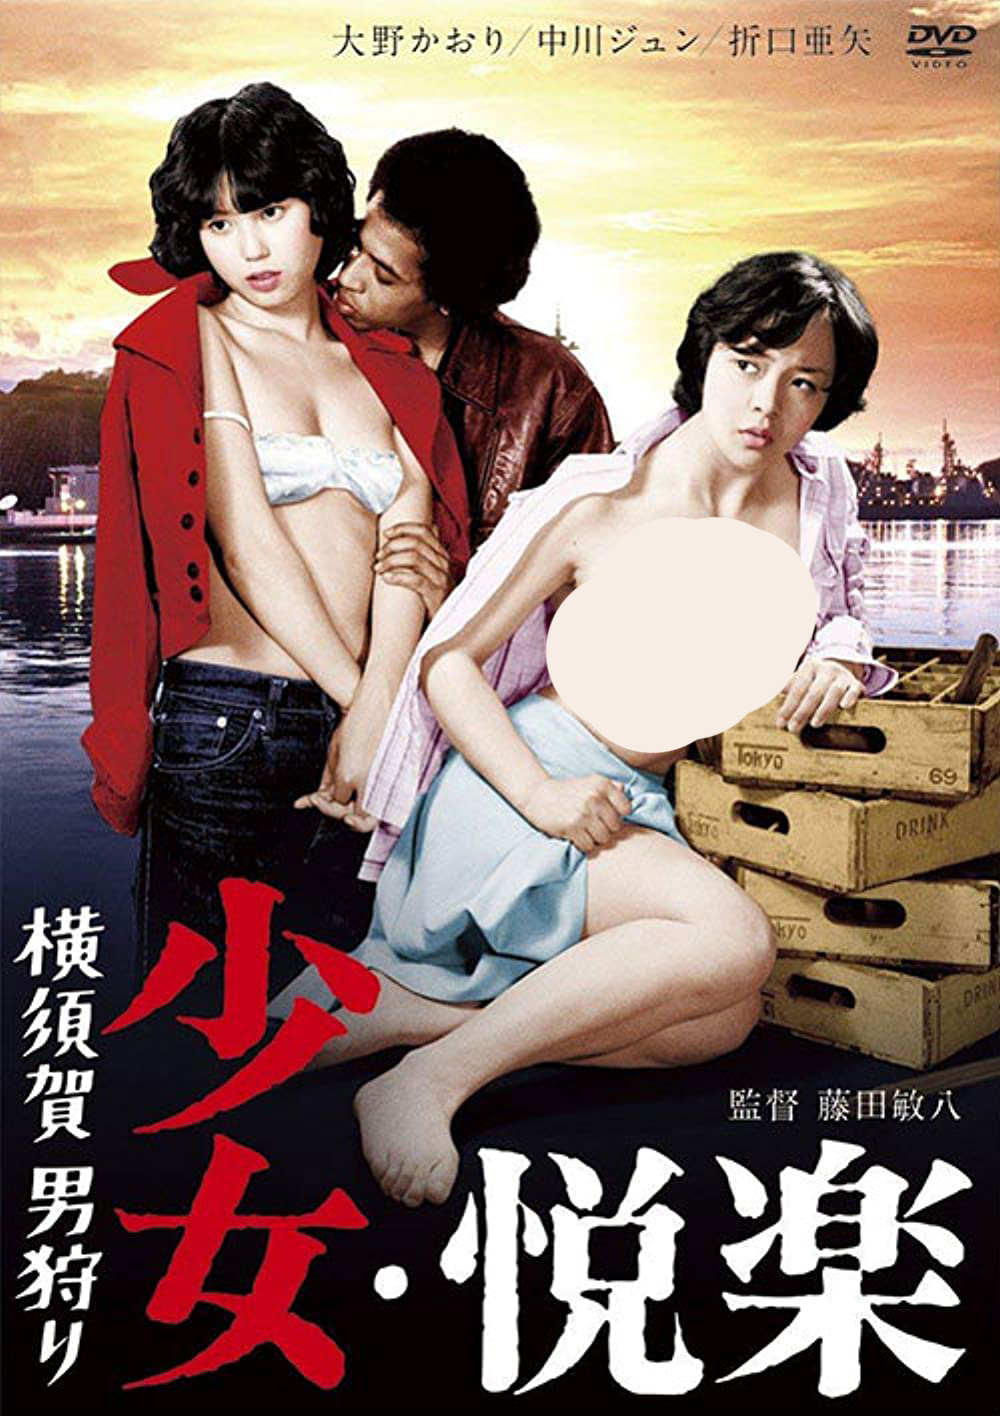 18+ Girls Pleasure Man Hunting 1977 Japanese 720p HDRip 500MB Download